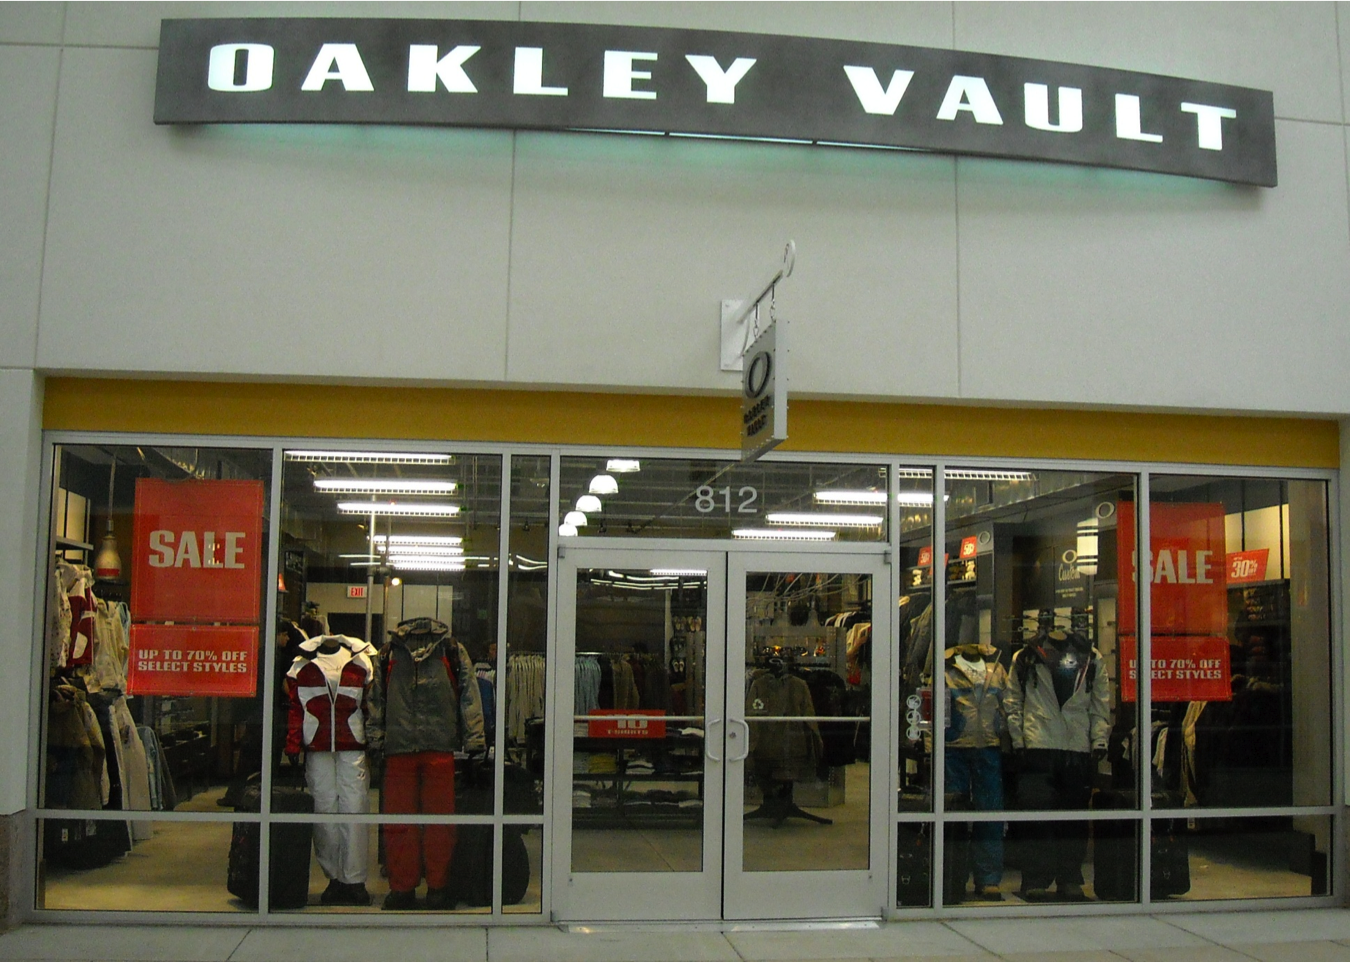 official oakley outlet  the official oakley outlet store: the oakley vault at jersey shore premium outlets. shop oakley sunglasses, goggles, apparel, and more up to 50% off at